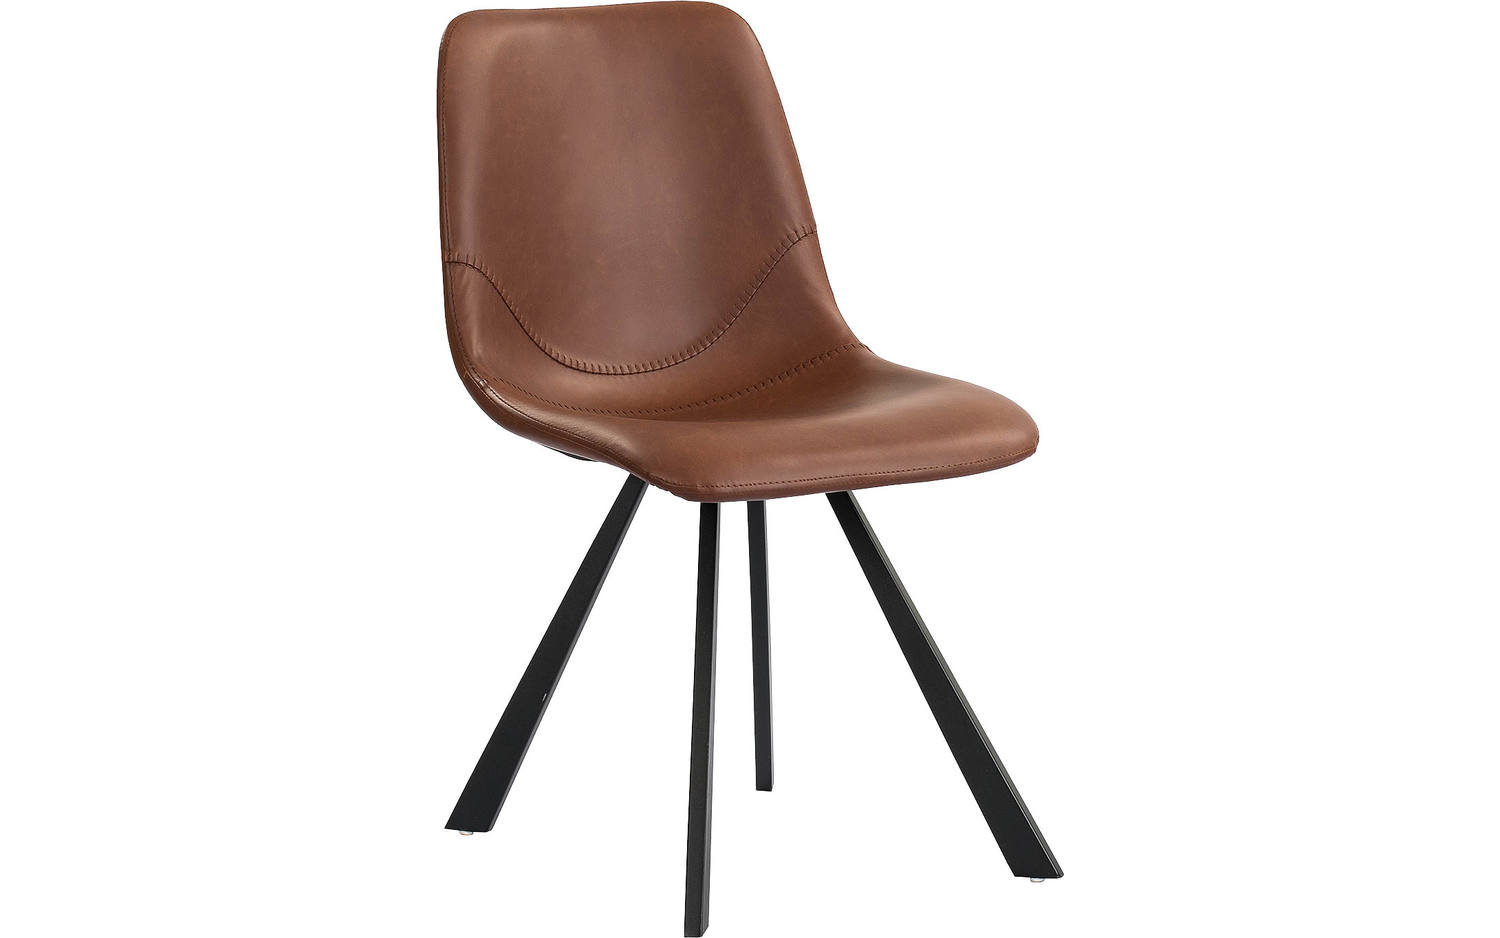 kinder kuipstoel perfect fk lounge kuipstoel with kinder kuipstoel charles eames rar with. Black Bedroom Furniture Sets. Home Design Ideas